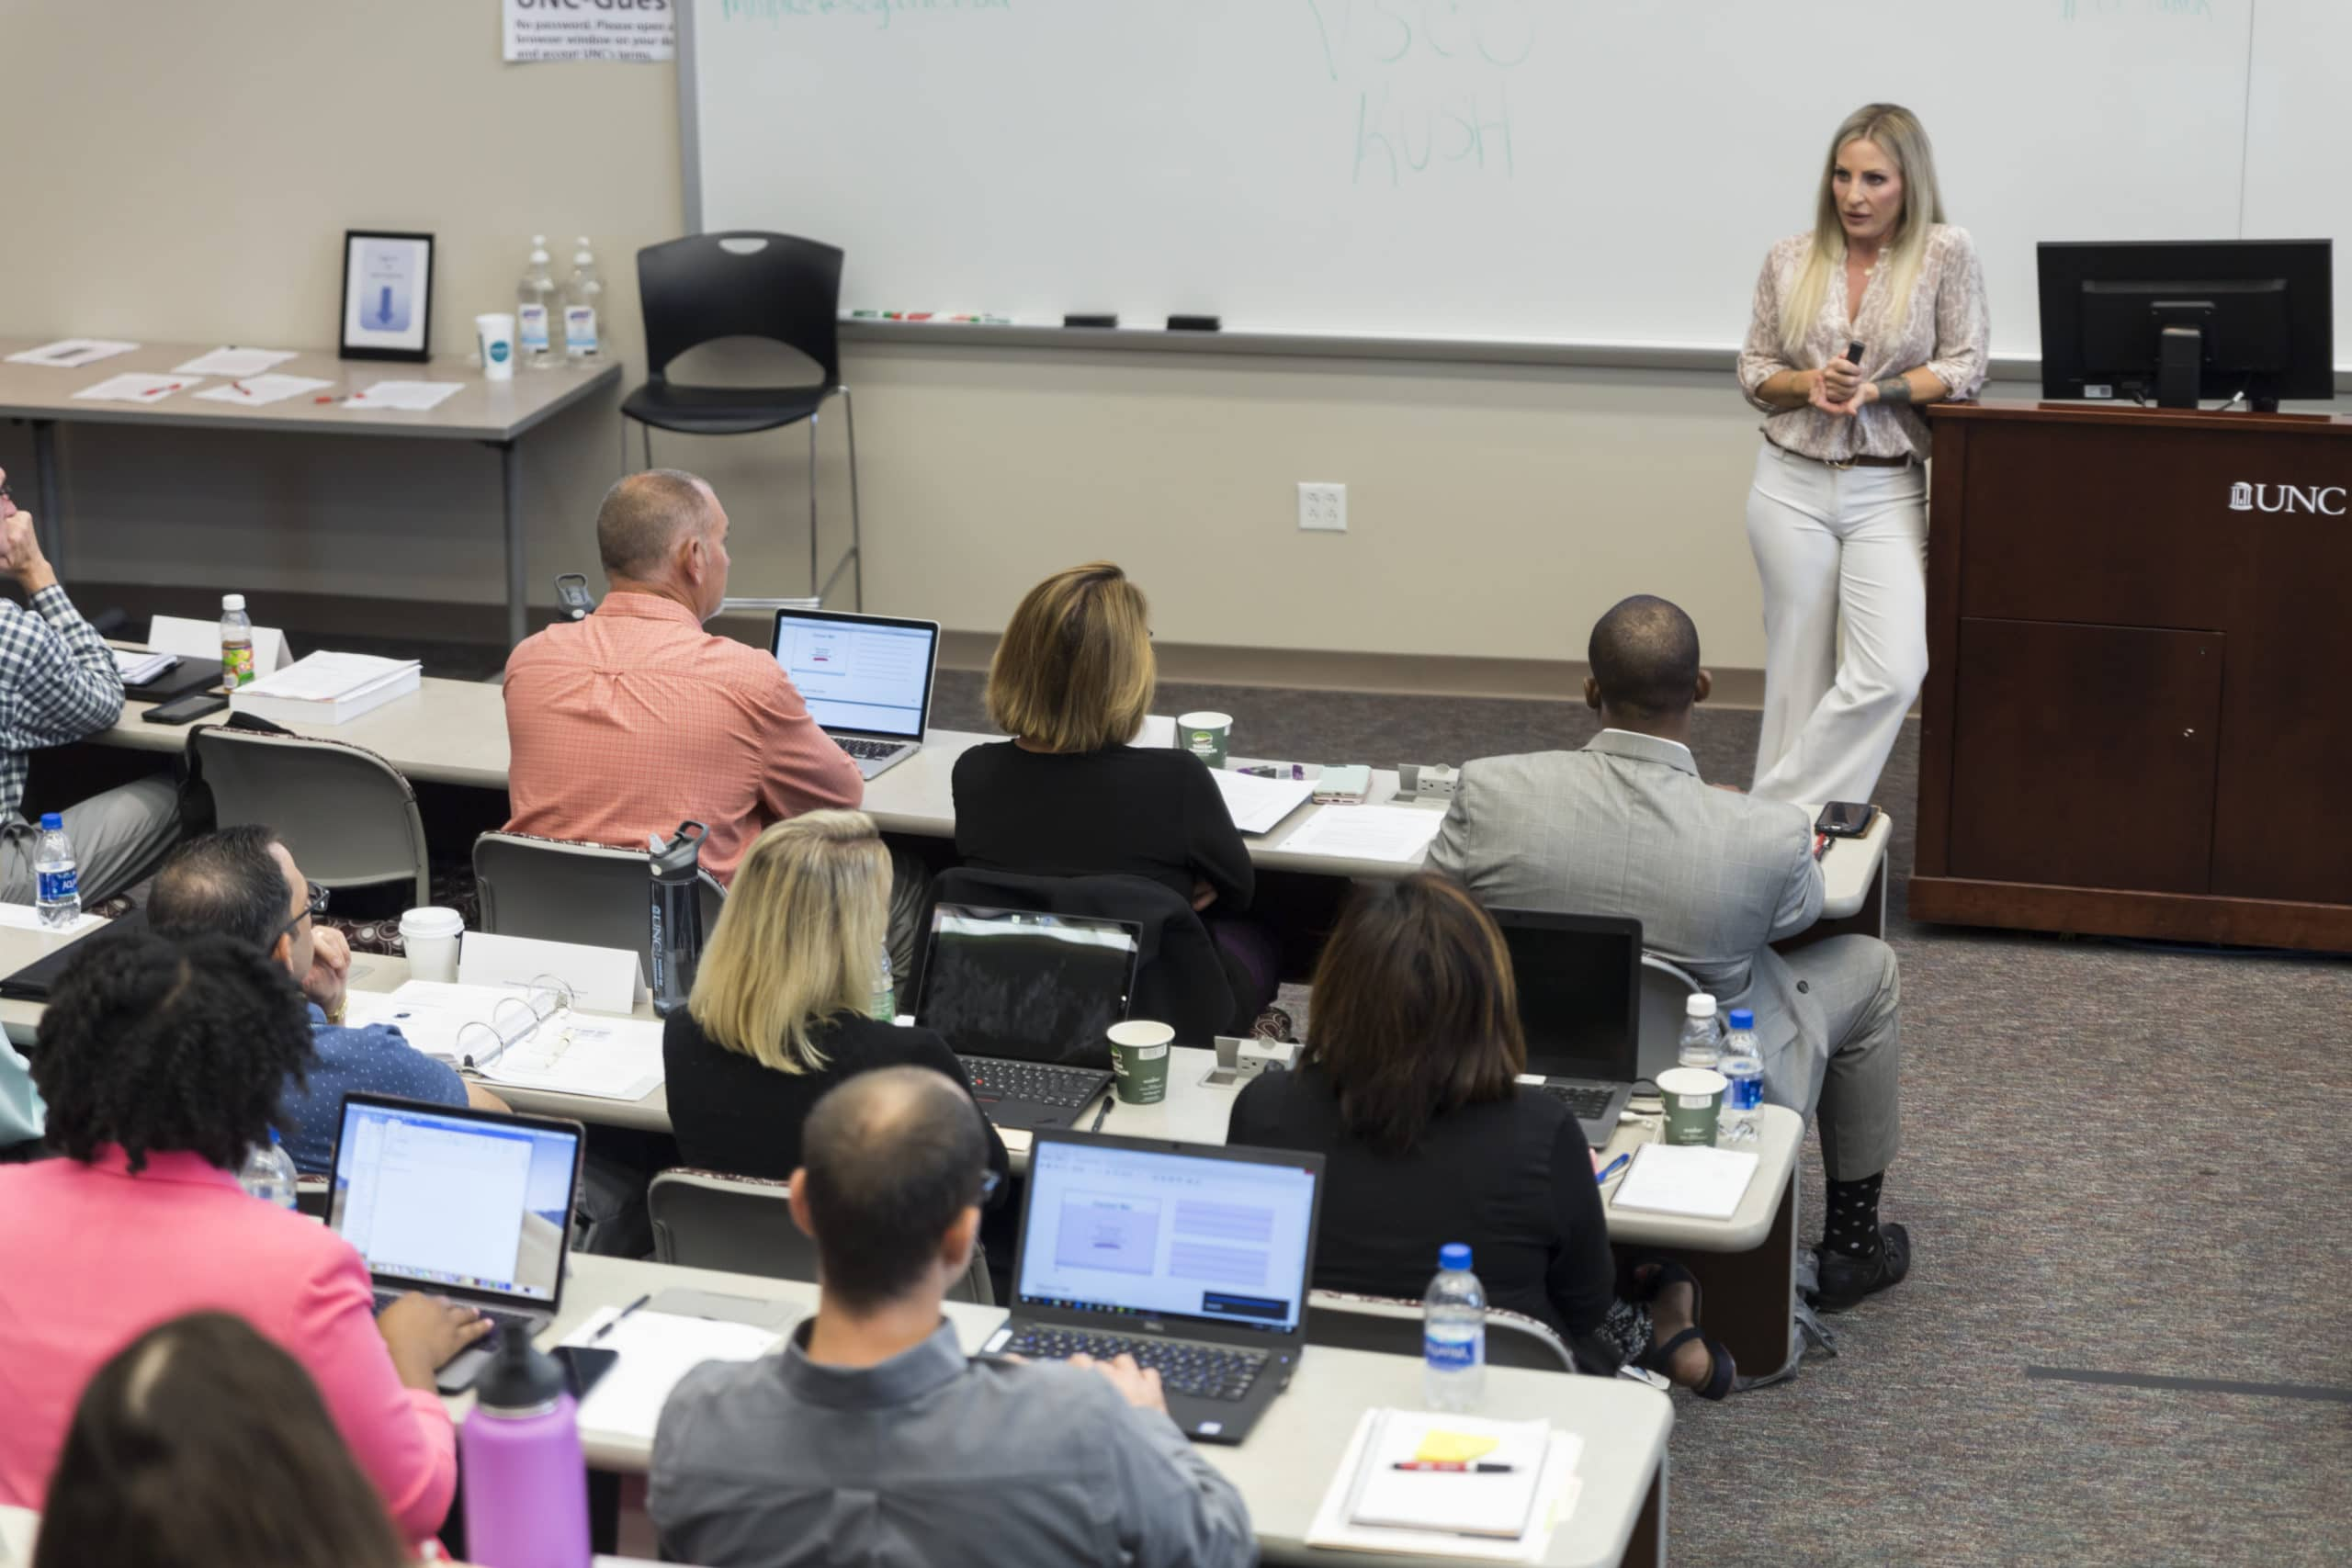 Local Government Training Initiative provides local governments in Tier 1 counties with professional development resources